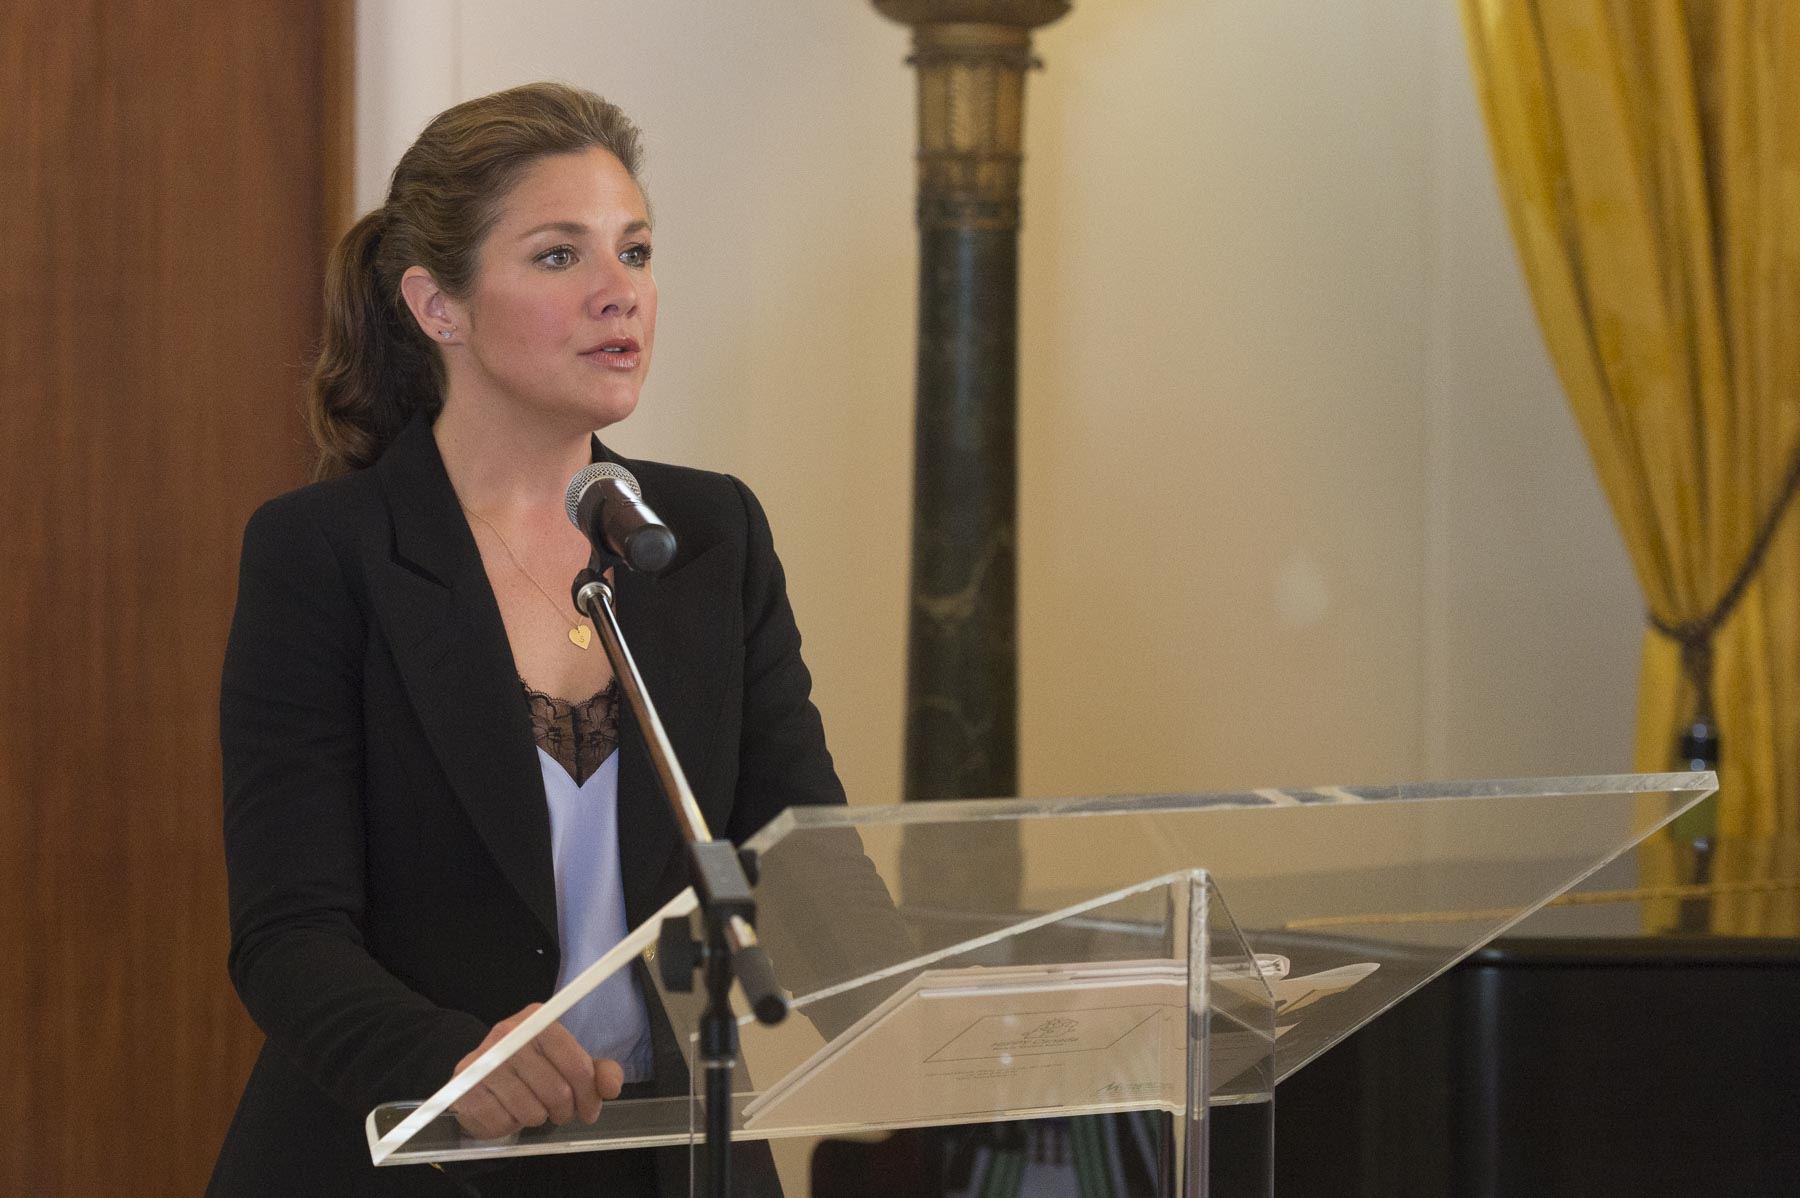 Ms. Sophie Grégoire Trudeau was one of the recipients.